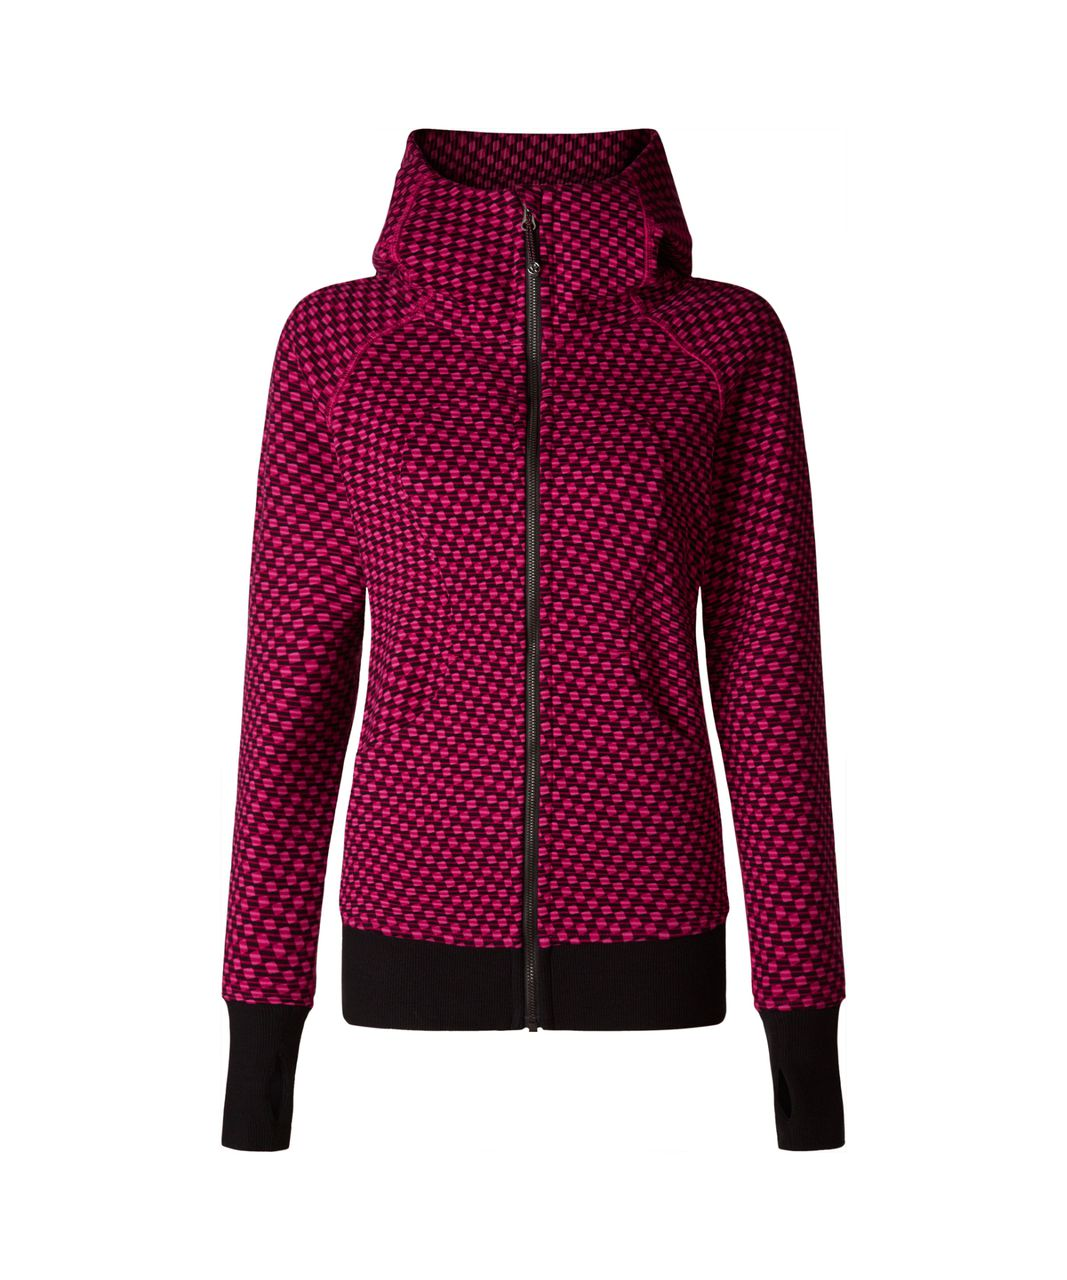 Lululemon Scuba Hoodie III - Deep Dive Berry Rumble Black / Black